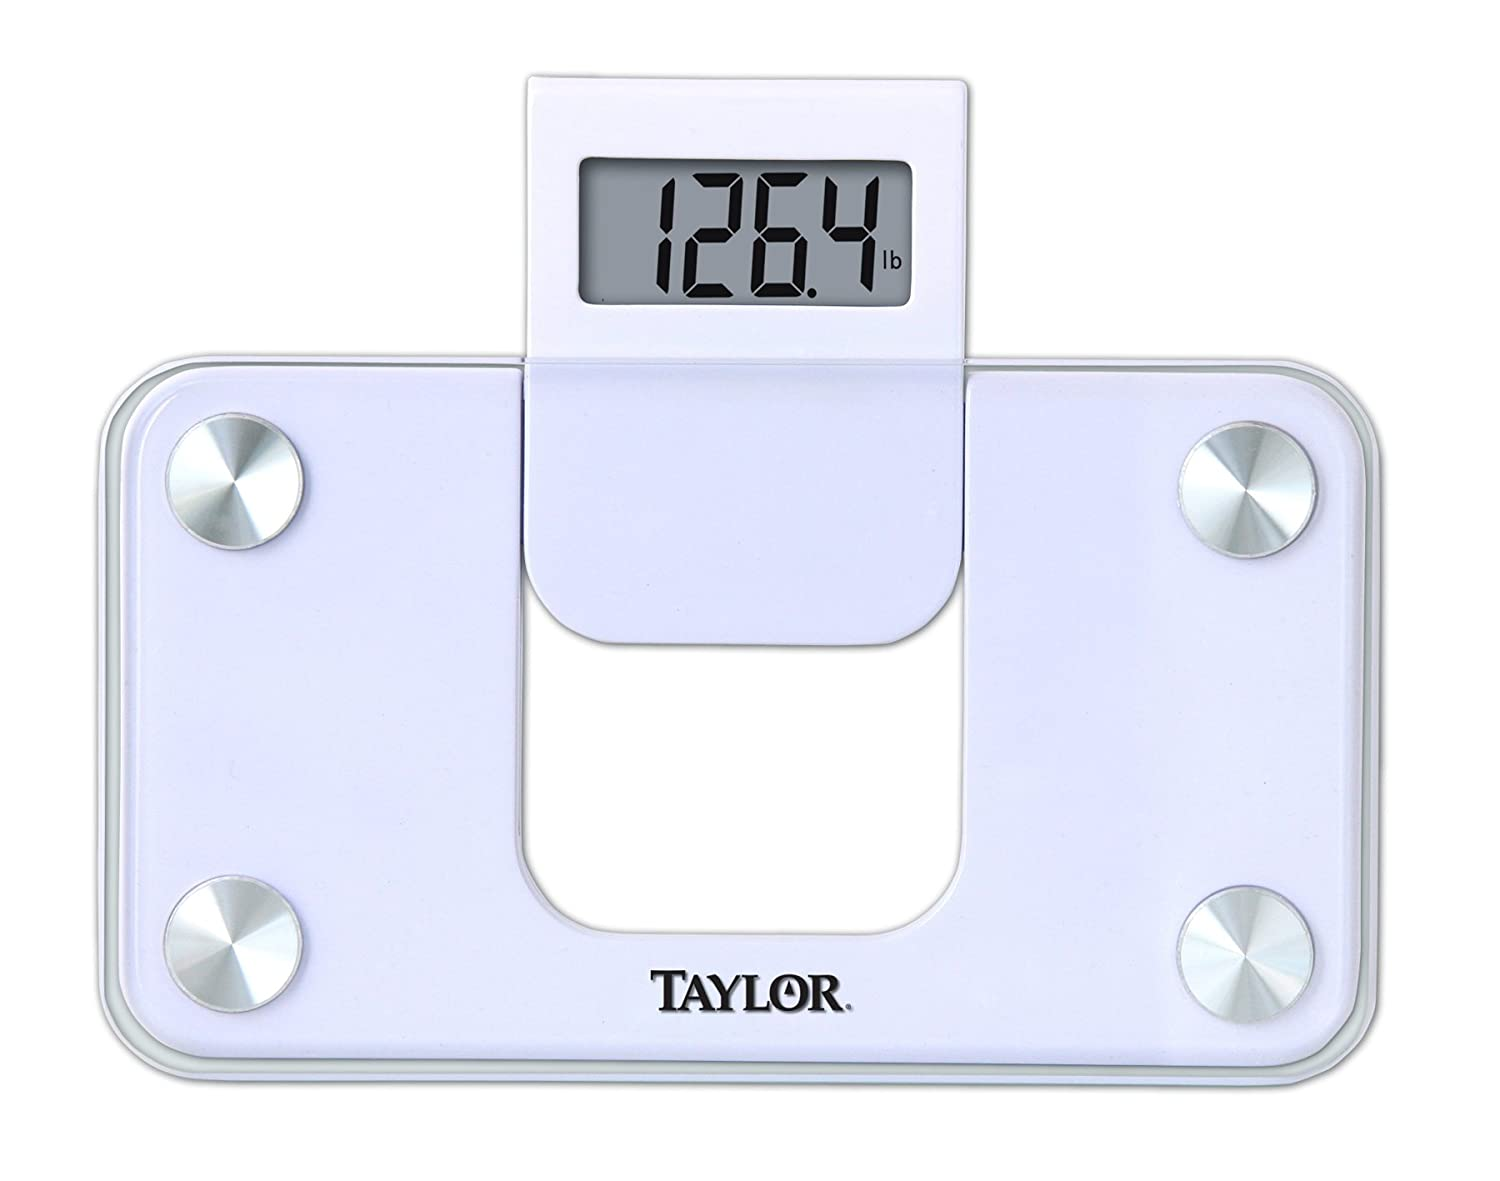 Amazon.com: Taylor Precision Products Digital Glass Mini Scale With  Expandable Readout, White: Health U0026 Personal Care